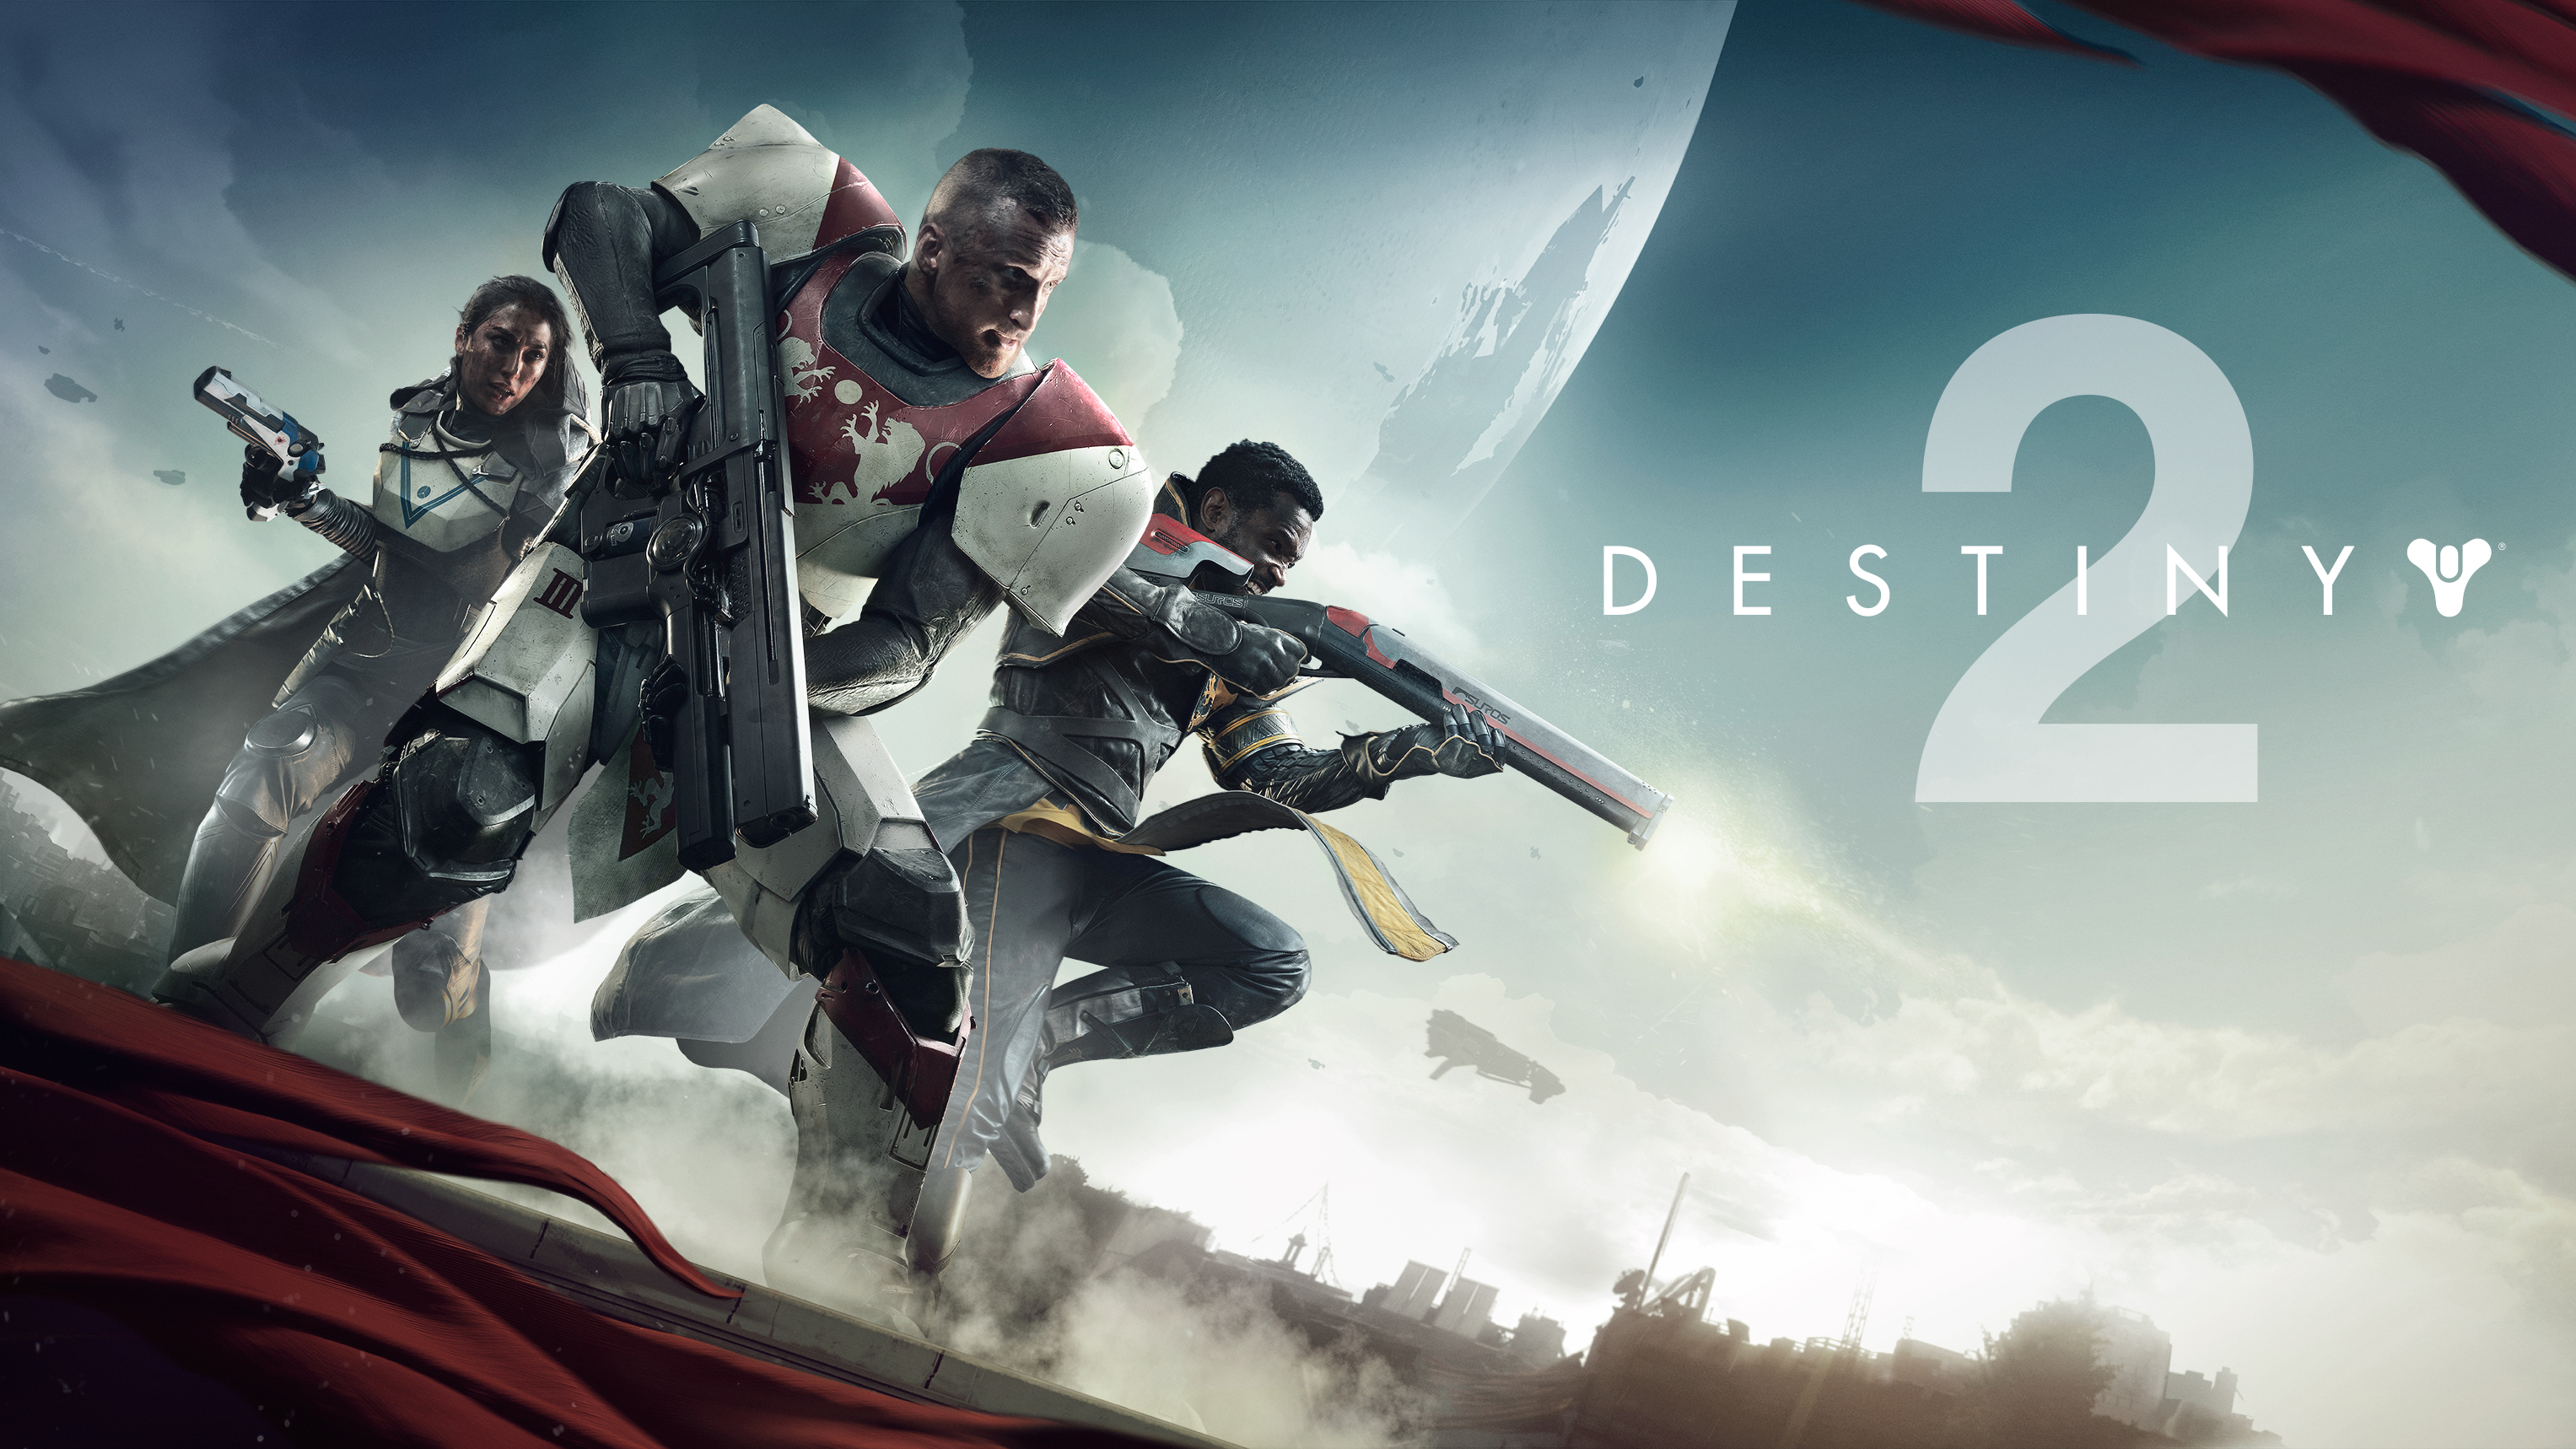 Destiny 2 Wallpaper 476158 Desktop Wallpaper 3054x1718